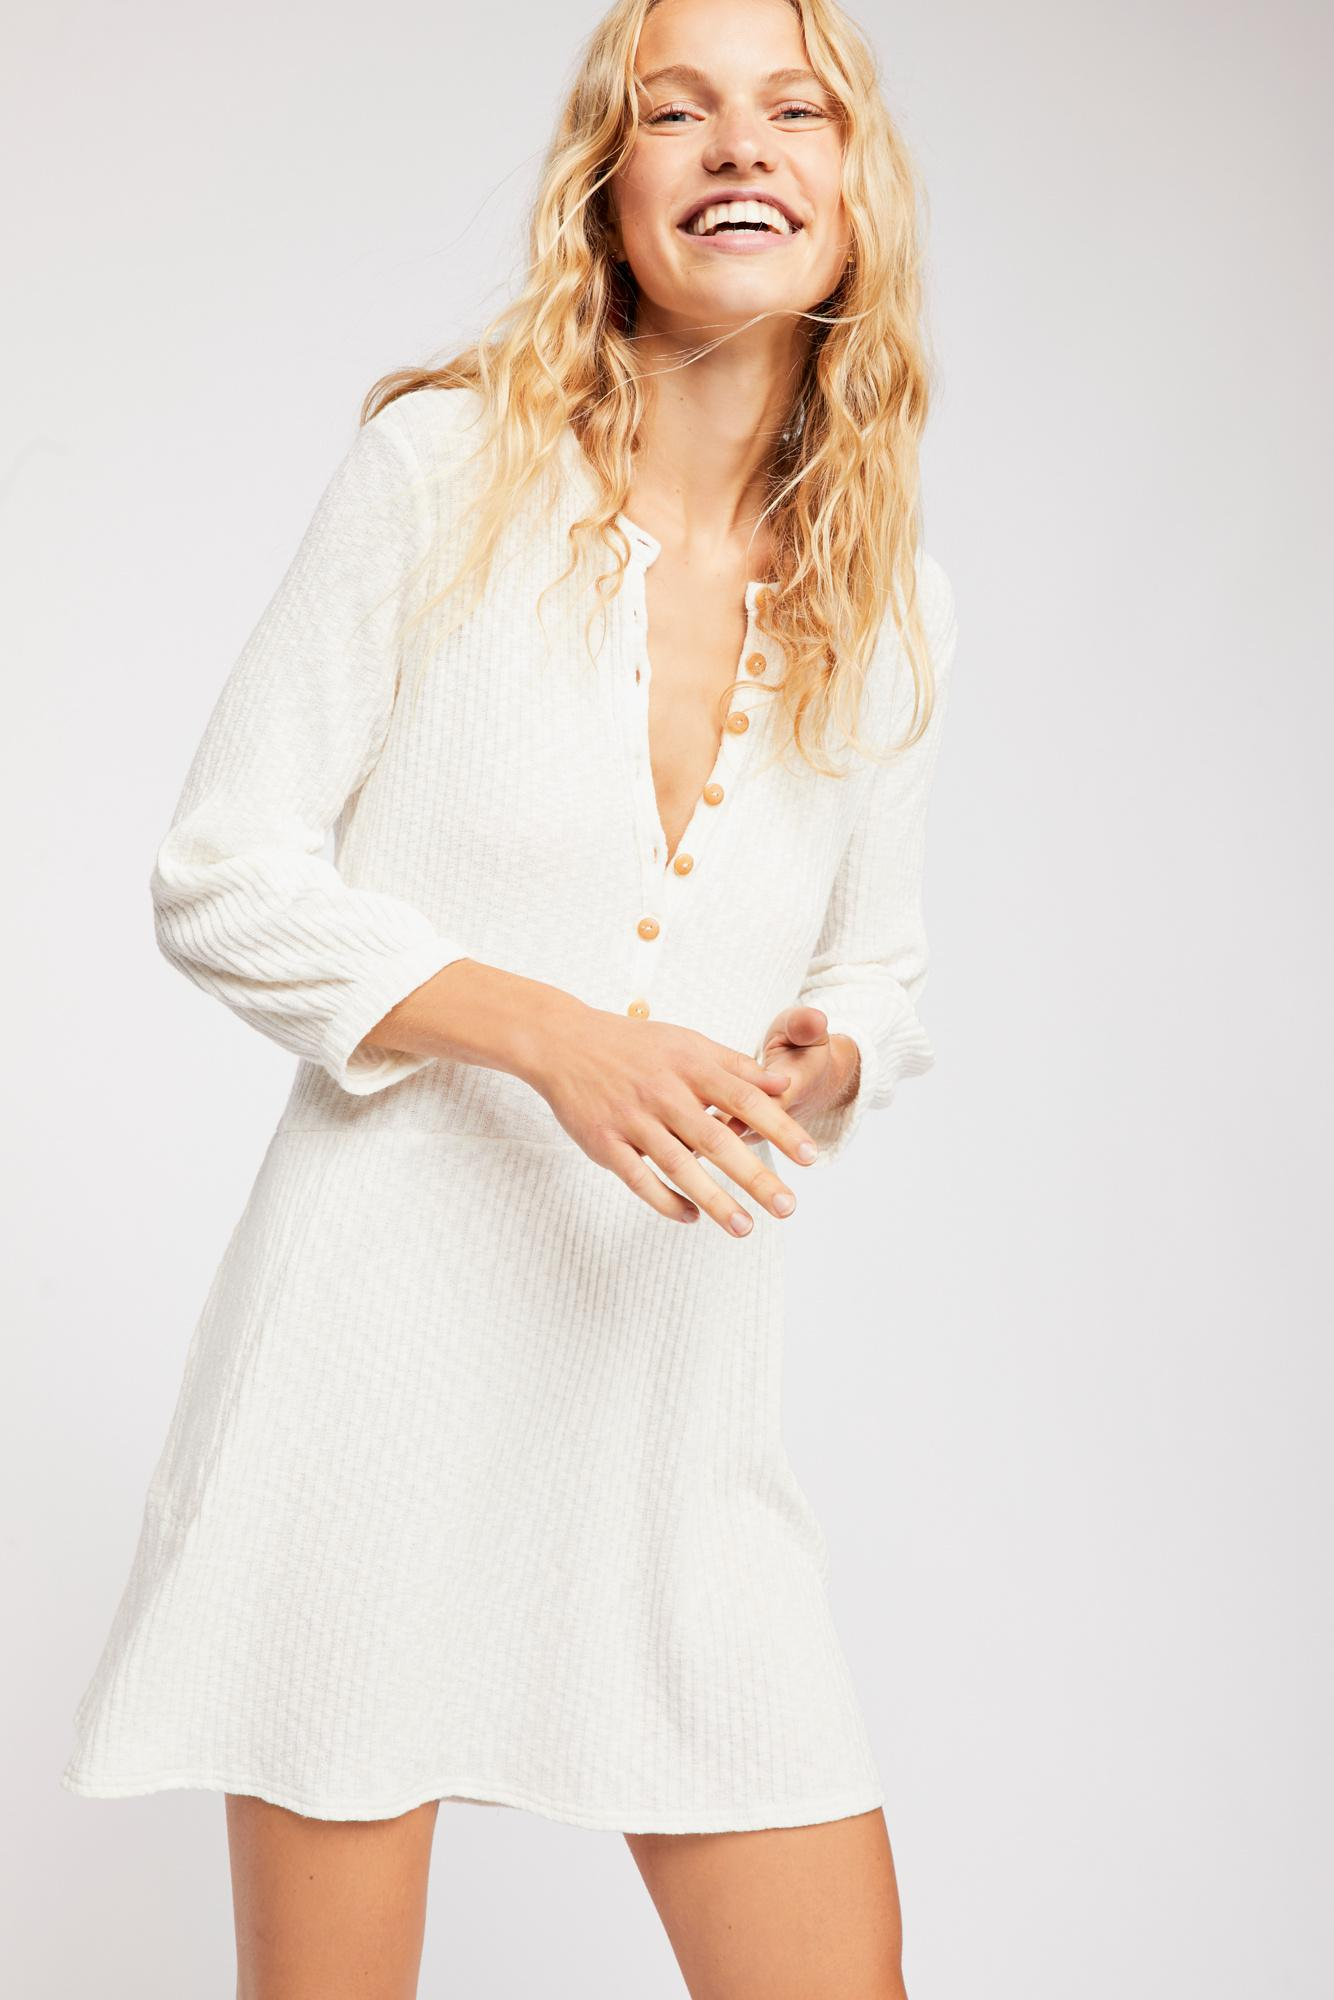 c4bdfe372a0 Free People - White Blossom Button-up T-shirt Dress By Fp Beach -. View  fullscreen